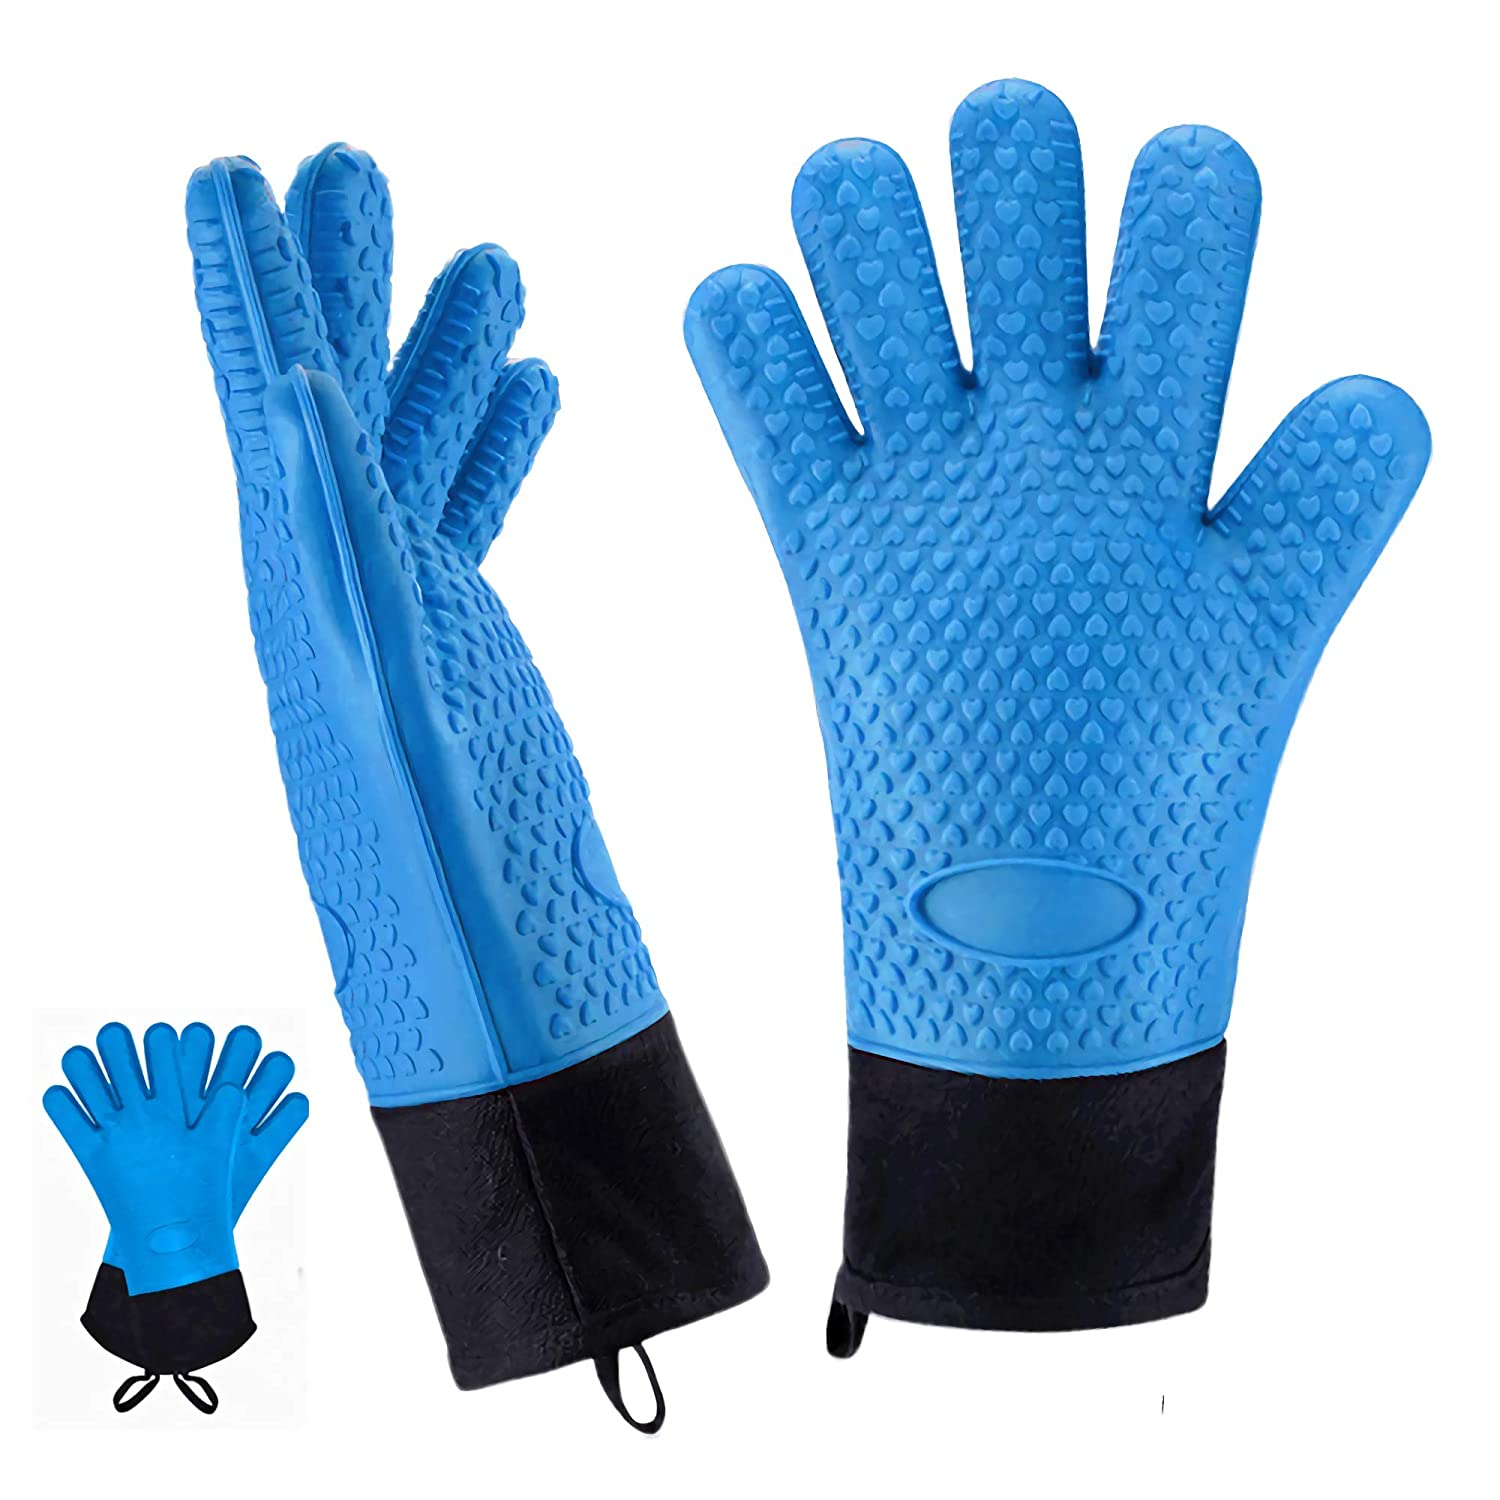 HUNLEE Oven Mitts, Long Size Waterproof Silicone Oven Mitts, Baking Insulation Heat Resistant Oven Gloves for Safe BBQ Cooking Grilling (Blue)